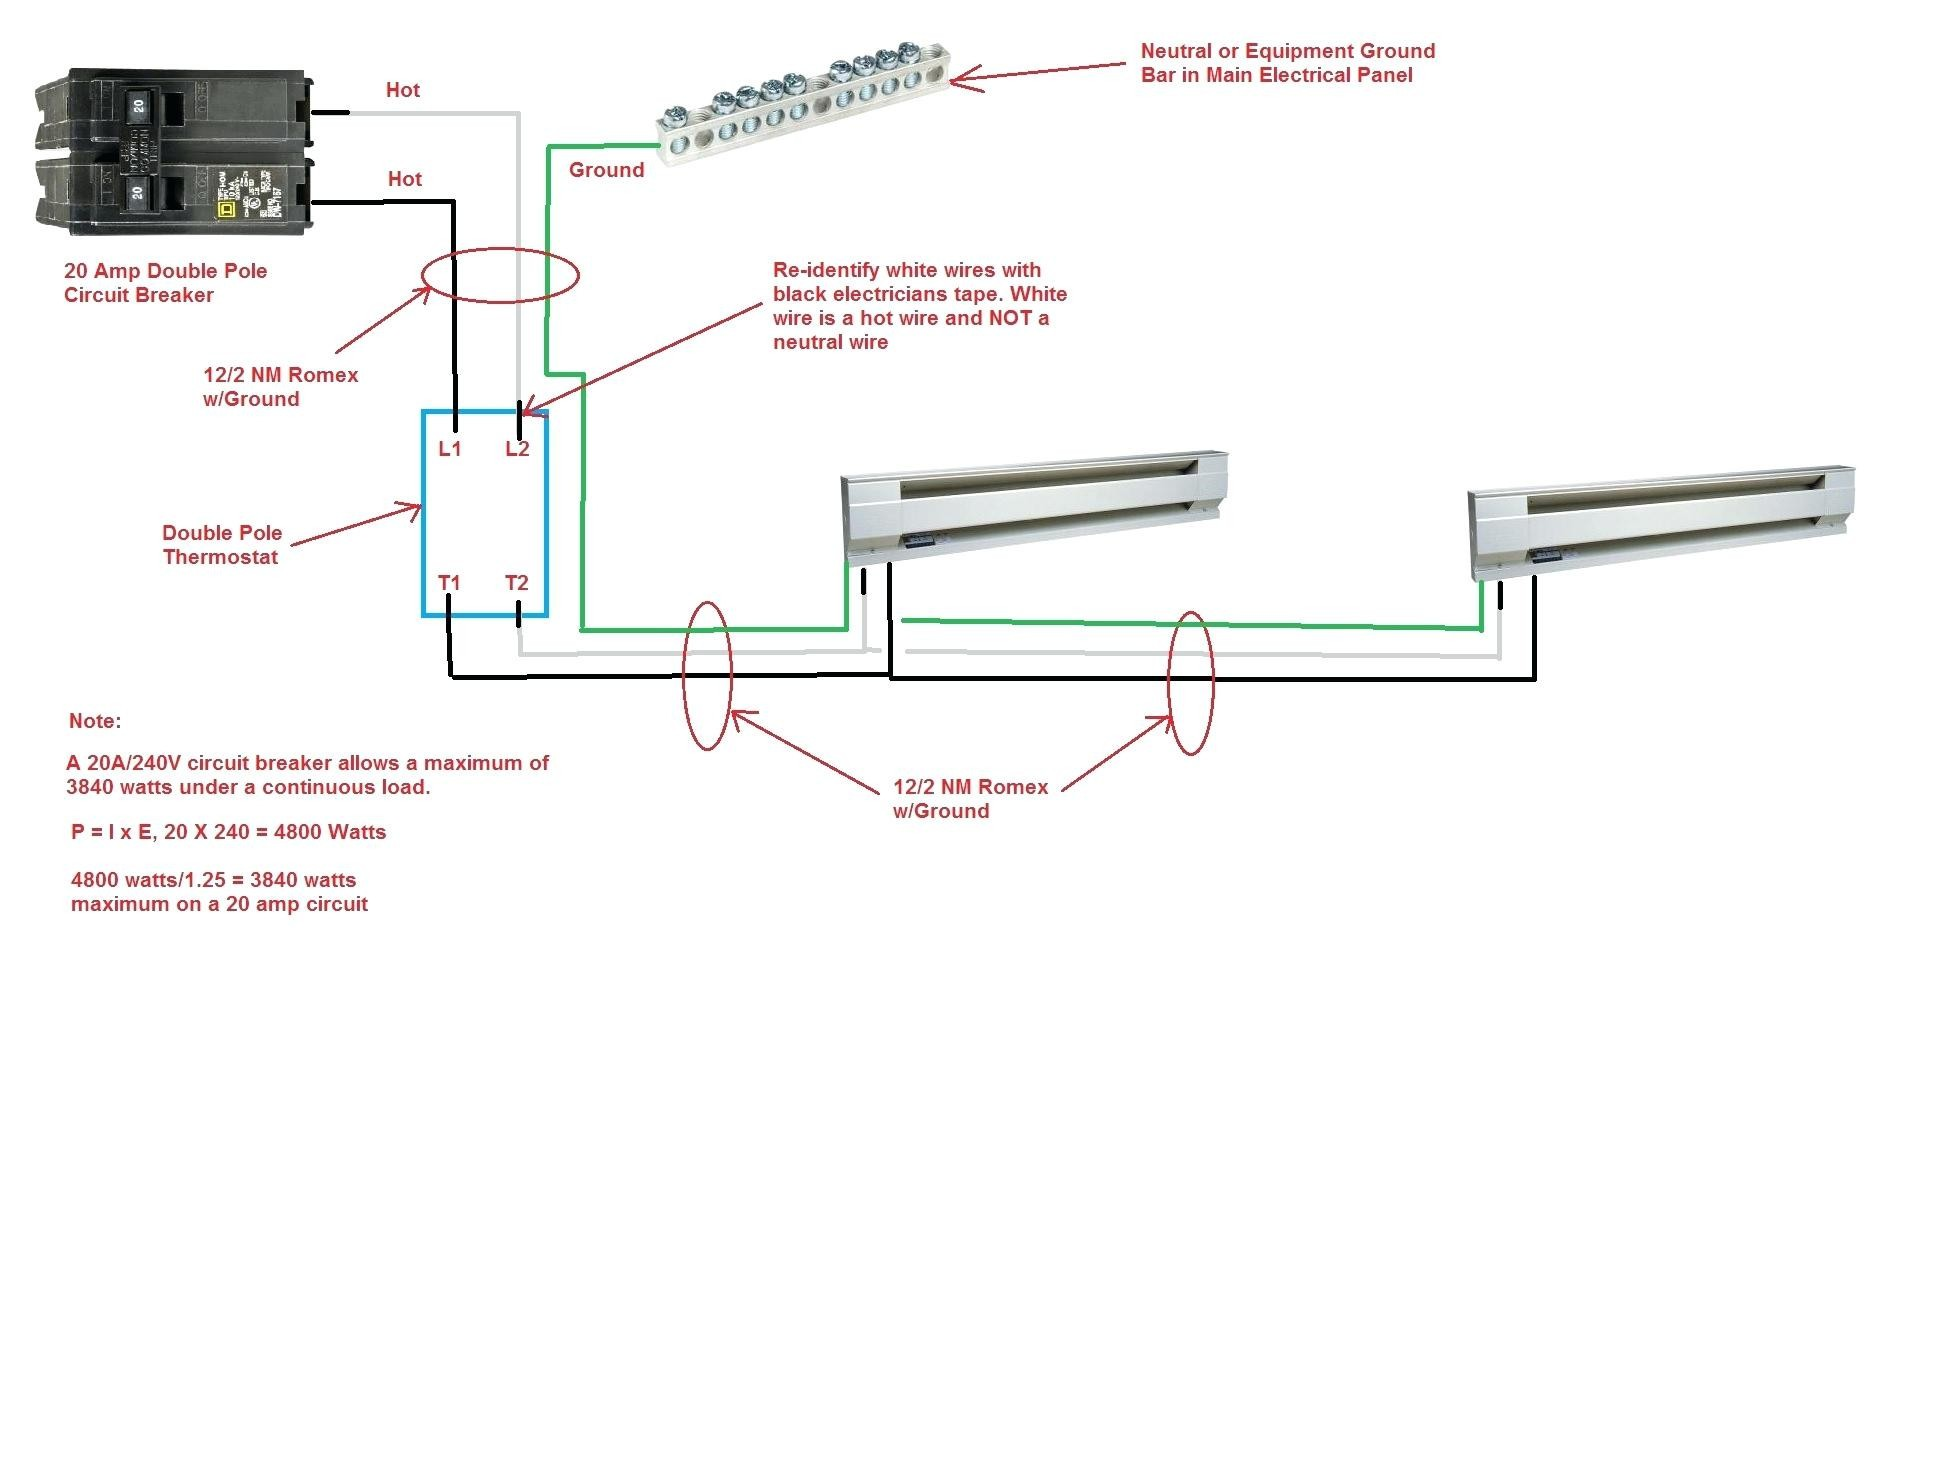 new wiring diagram 2 baseboard heaters 1 thermostat rccarsusa rh rccarsusa Wiring a 220V Baseboard Heater Wiring a 240V Baseboard Heater